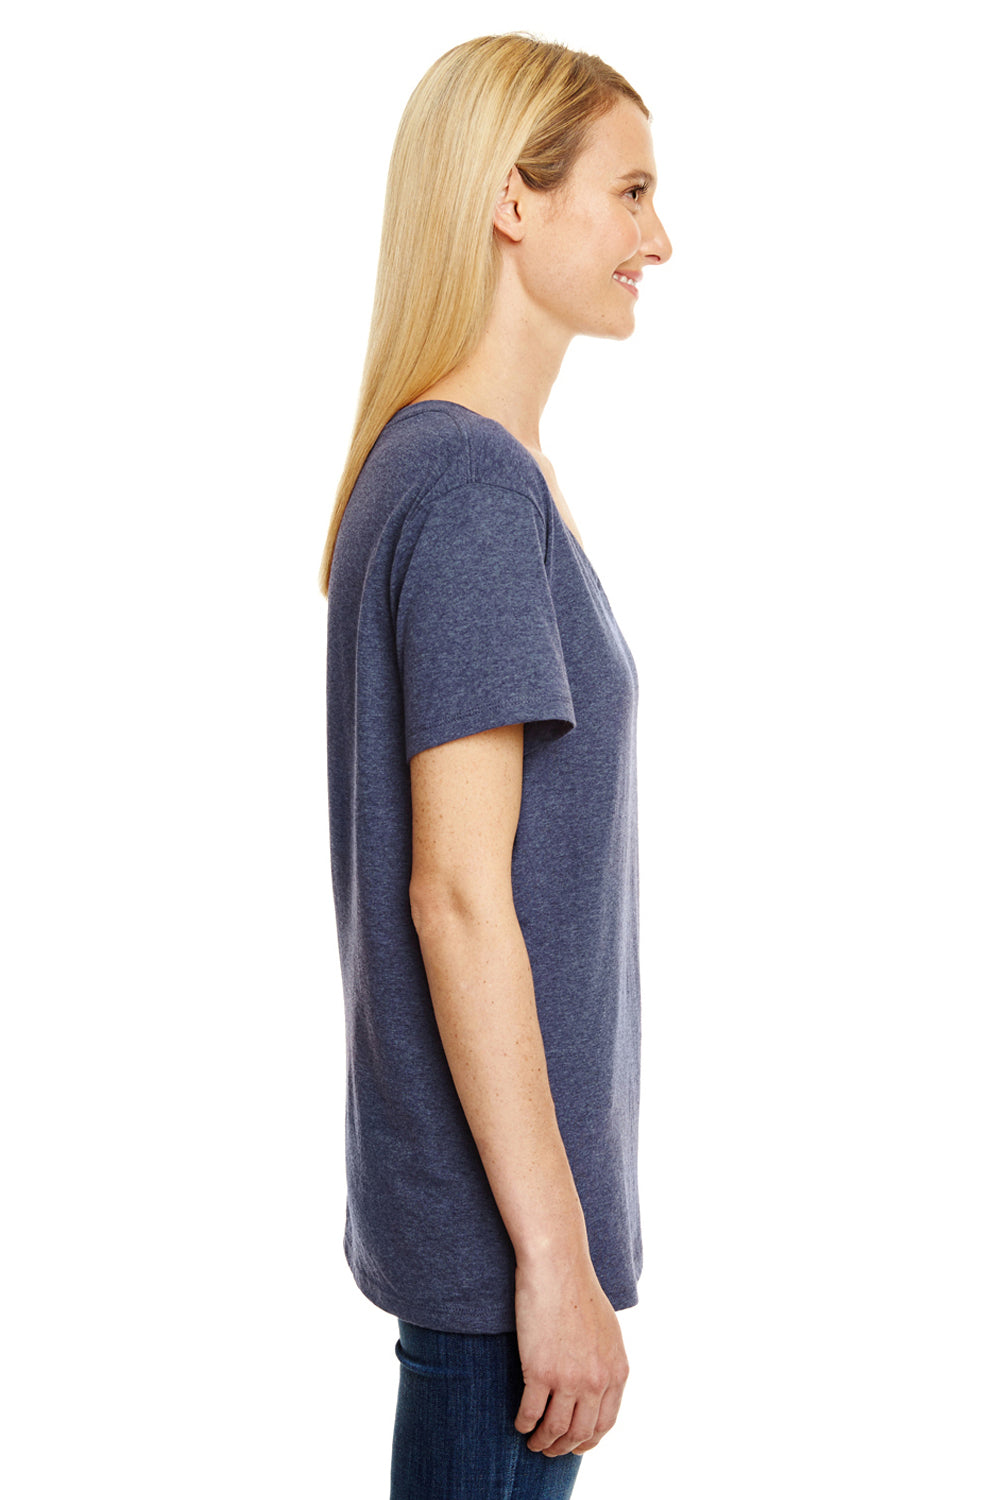 Hanes 42VT Womens X-Temp FreshIQ Moisture Wicking Short Sleeve V-Neck T-Shirt Navy Blue Side